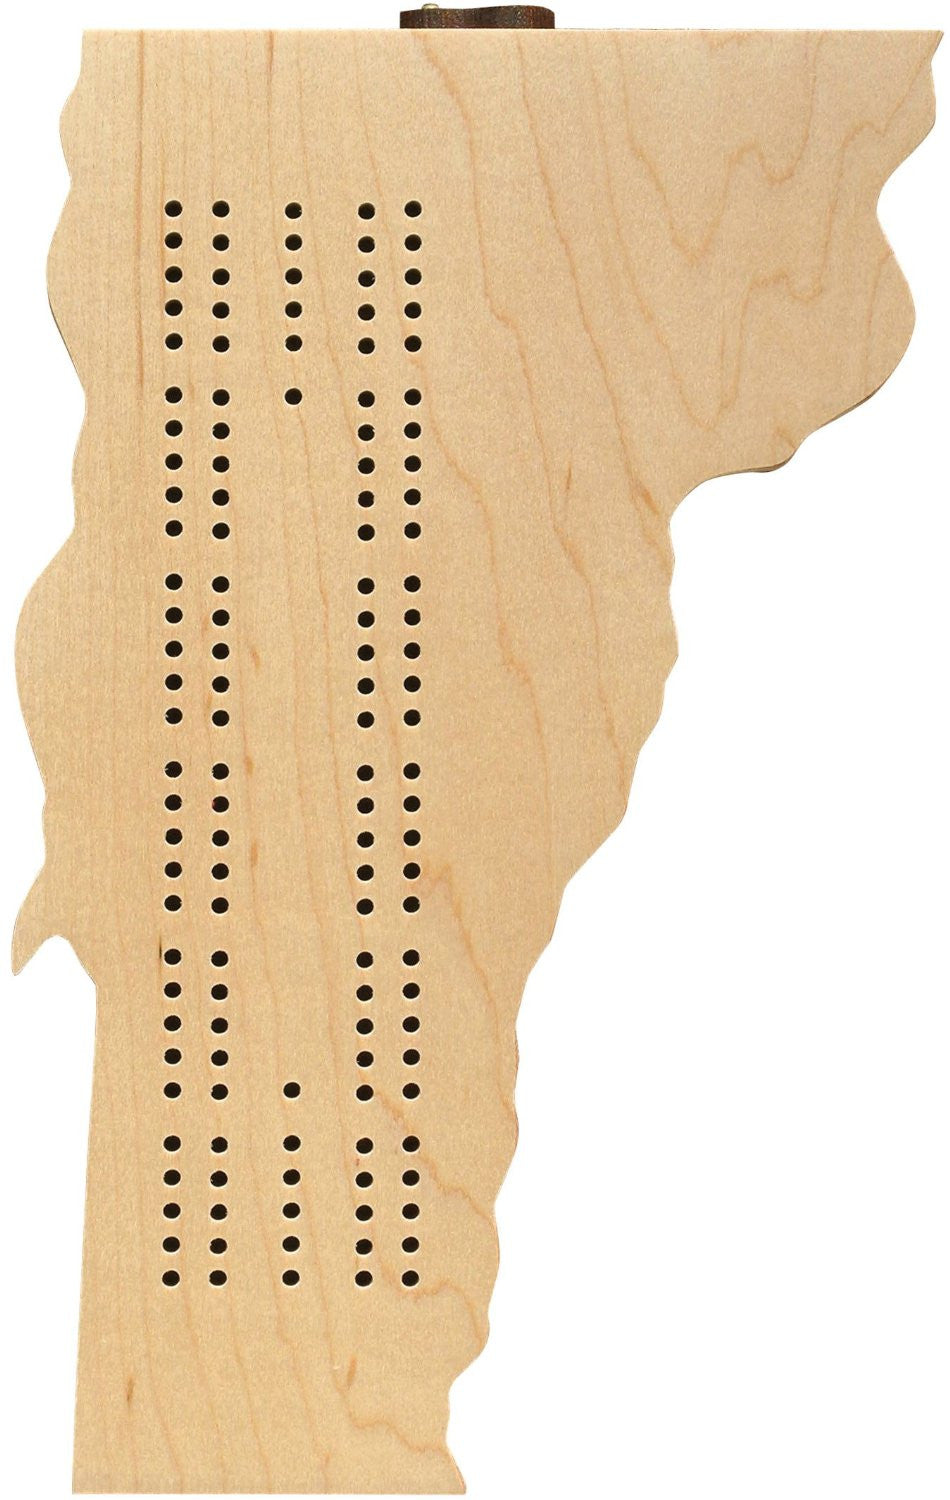 Vermont Shaped Cribbage Board